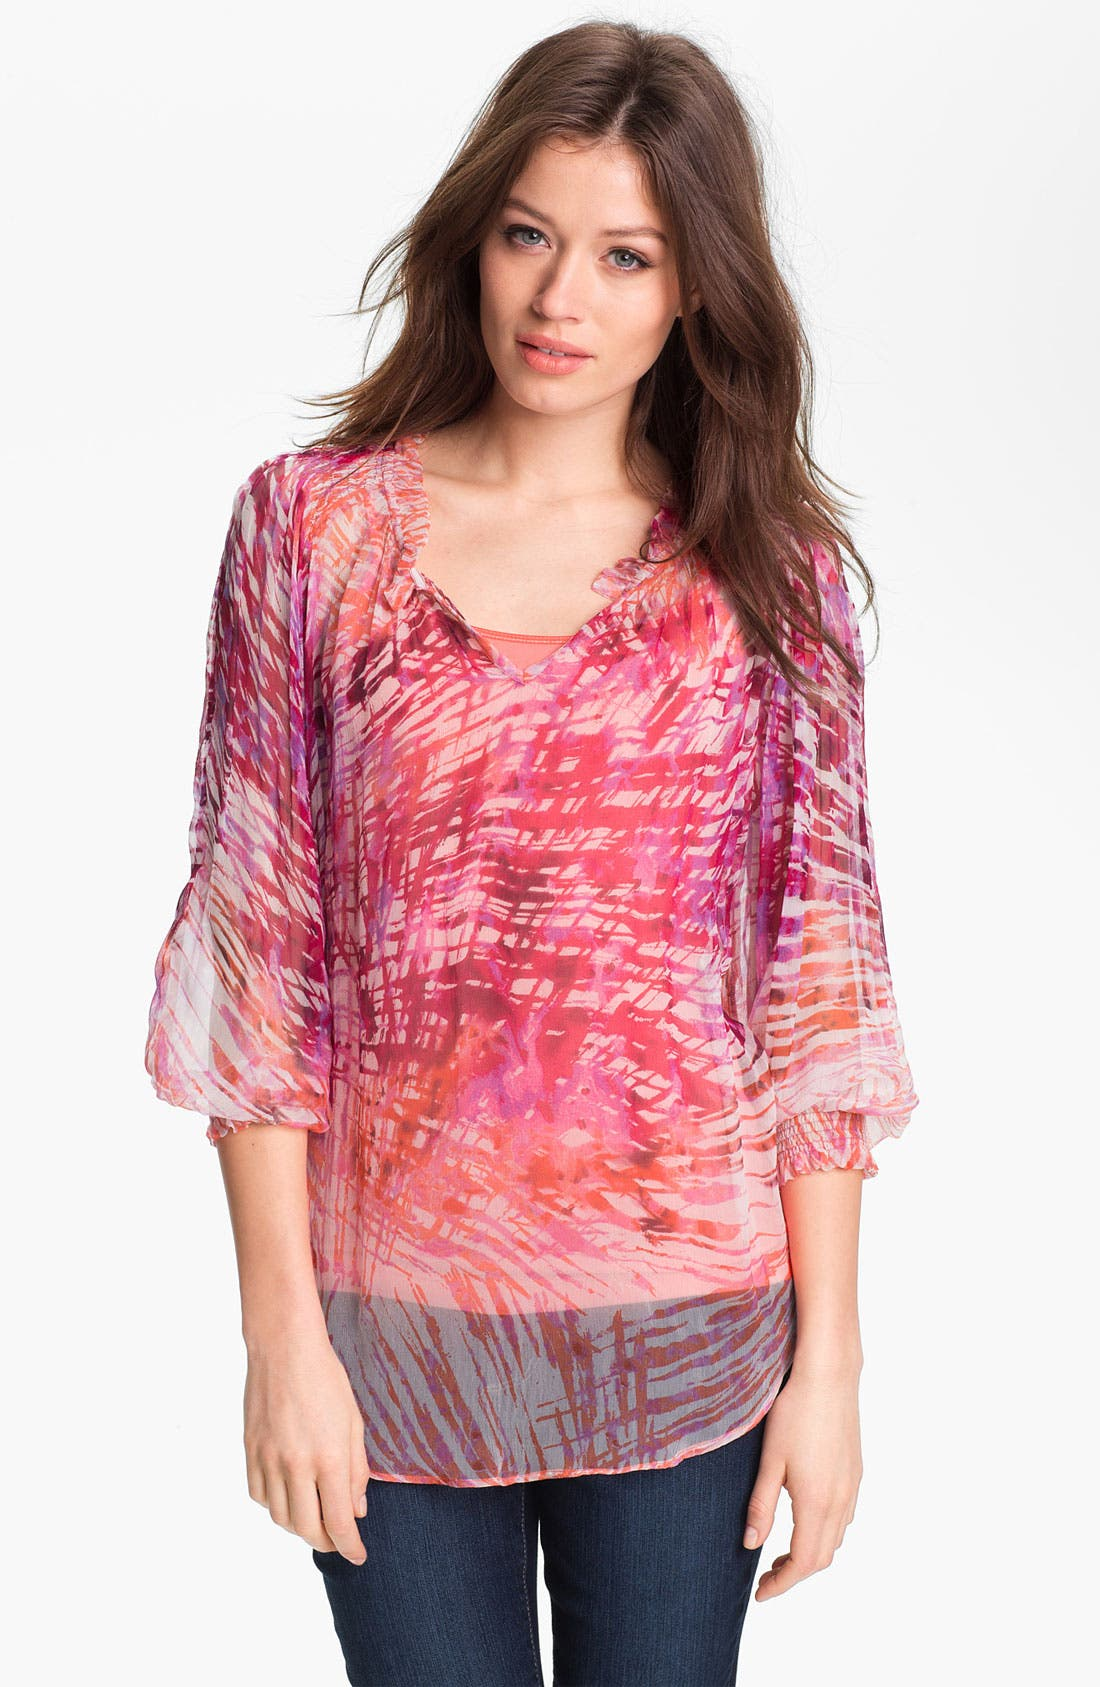 Alternate Image 1 Selected - Casual Studio Sheer Print Blouse